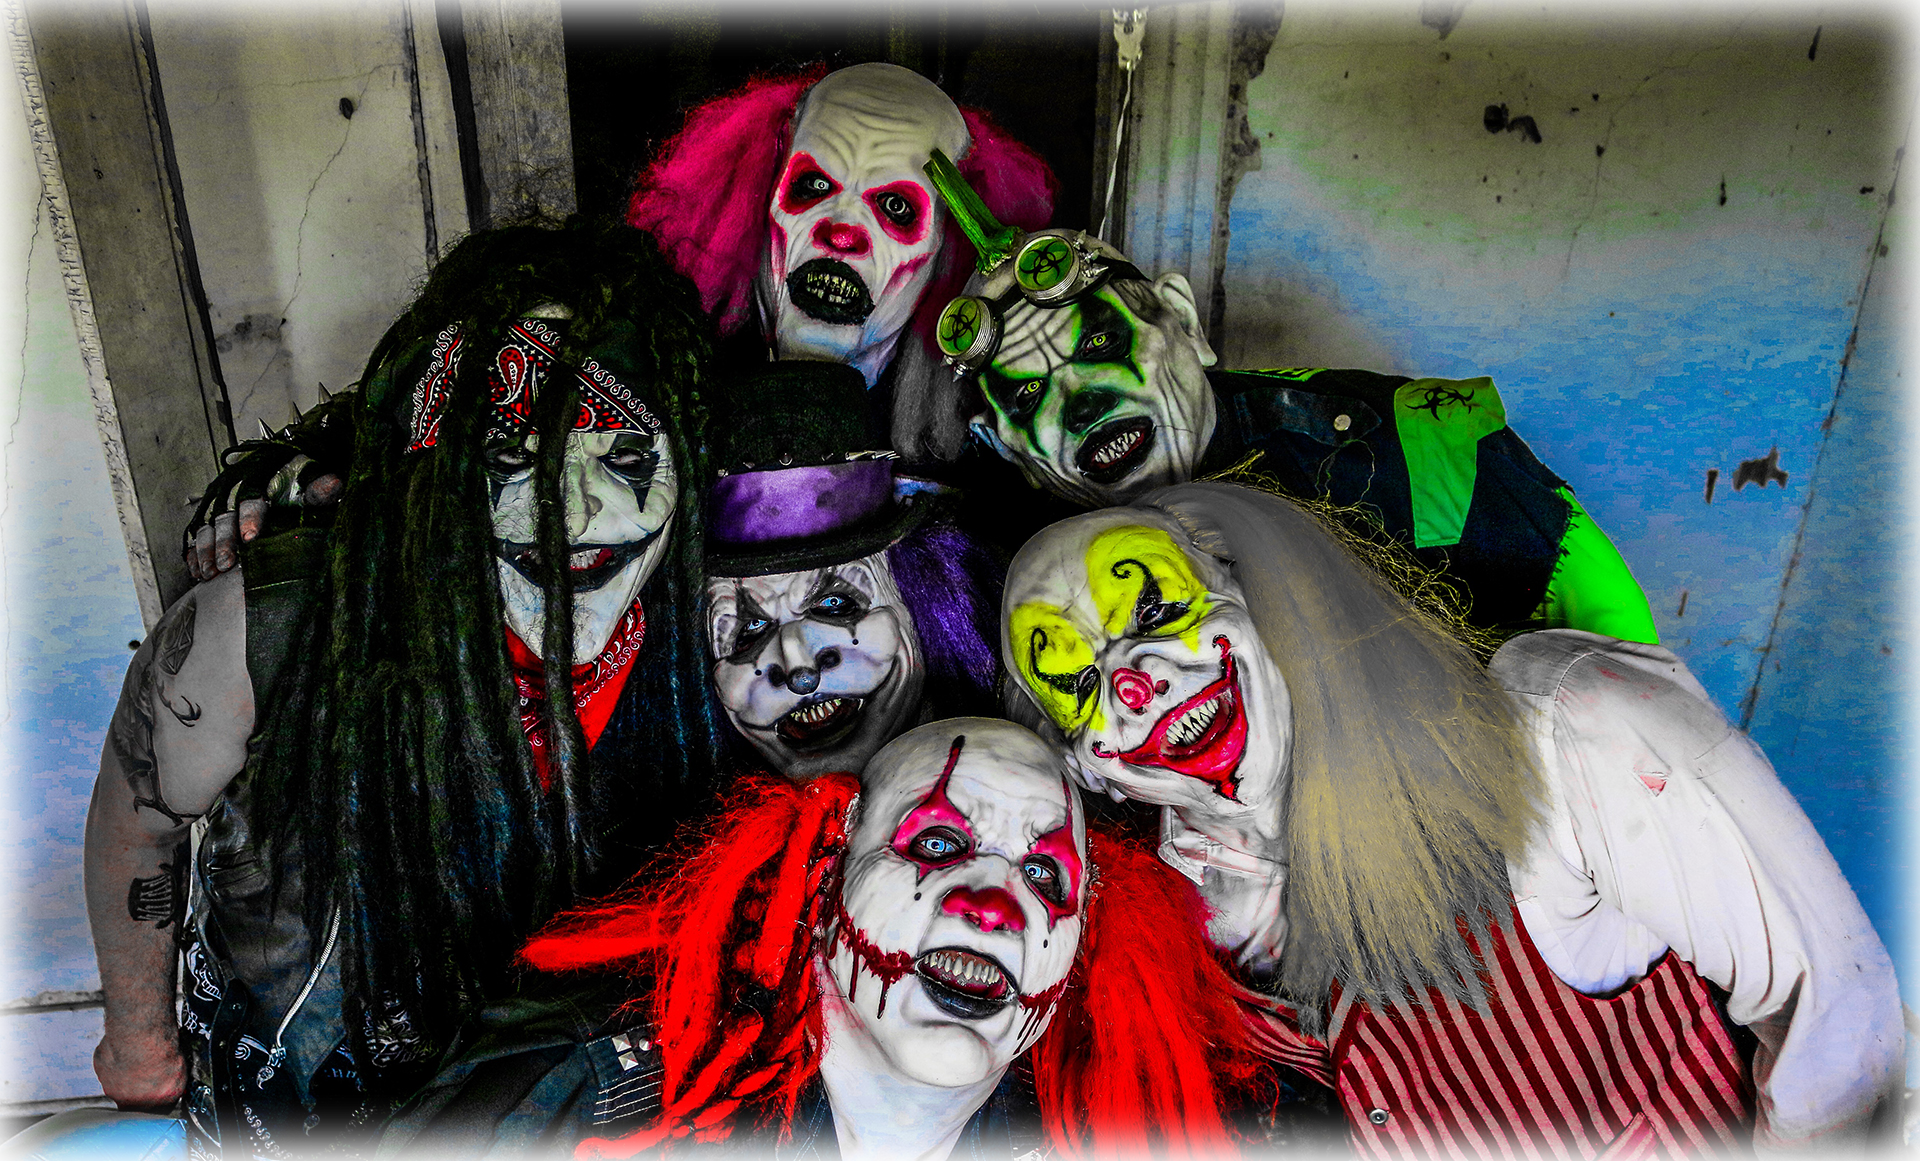 The clowns of Haunted Haven